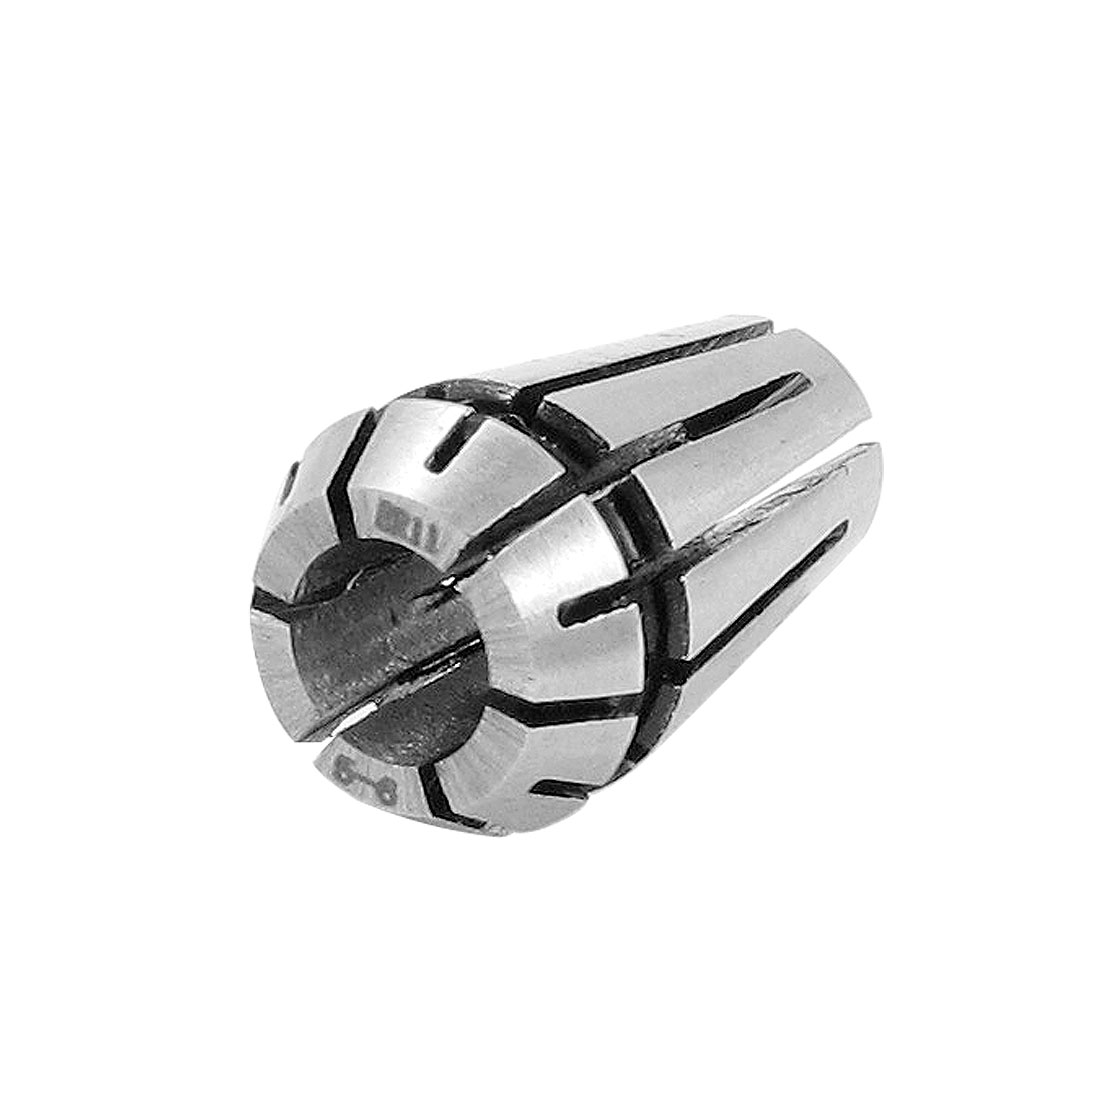 Clamping Range 5-6mm ER11 Precision Spring Collet Reaming Part